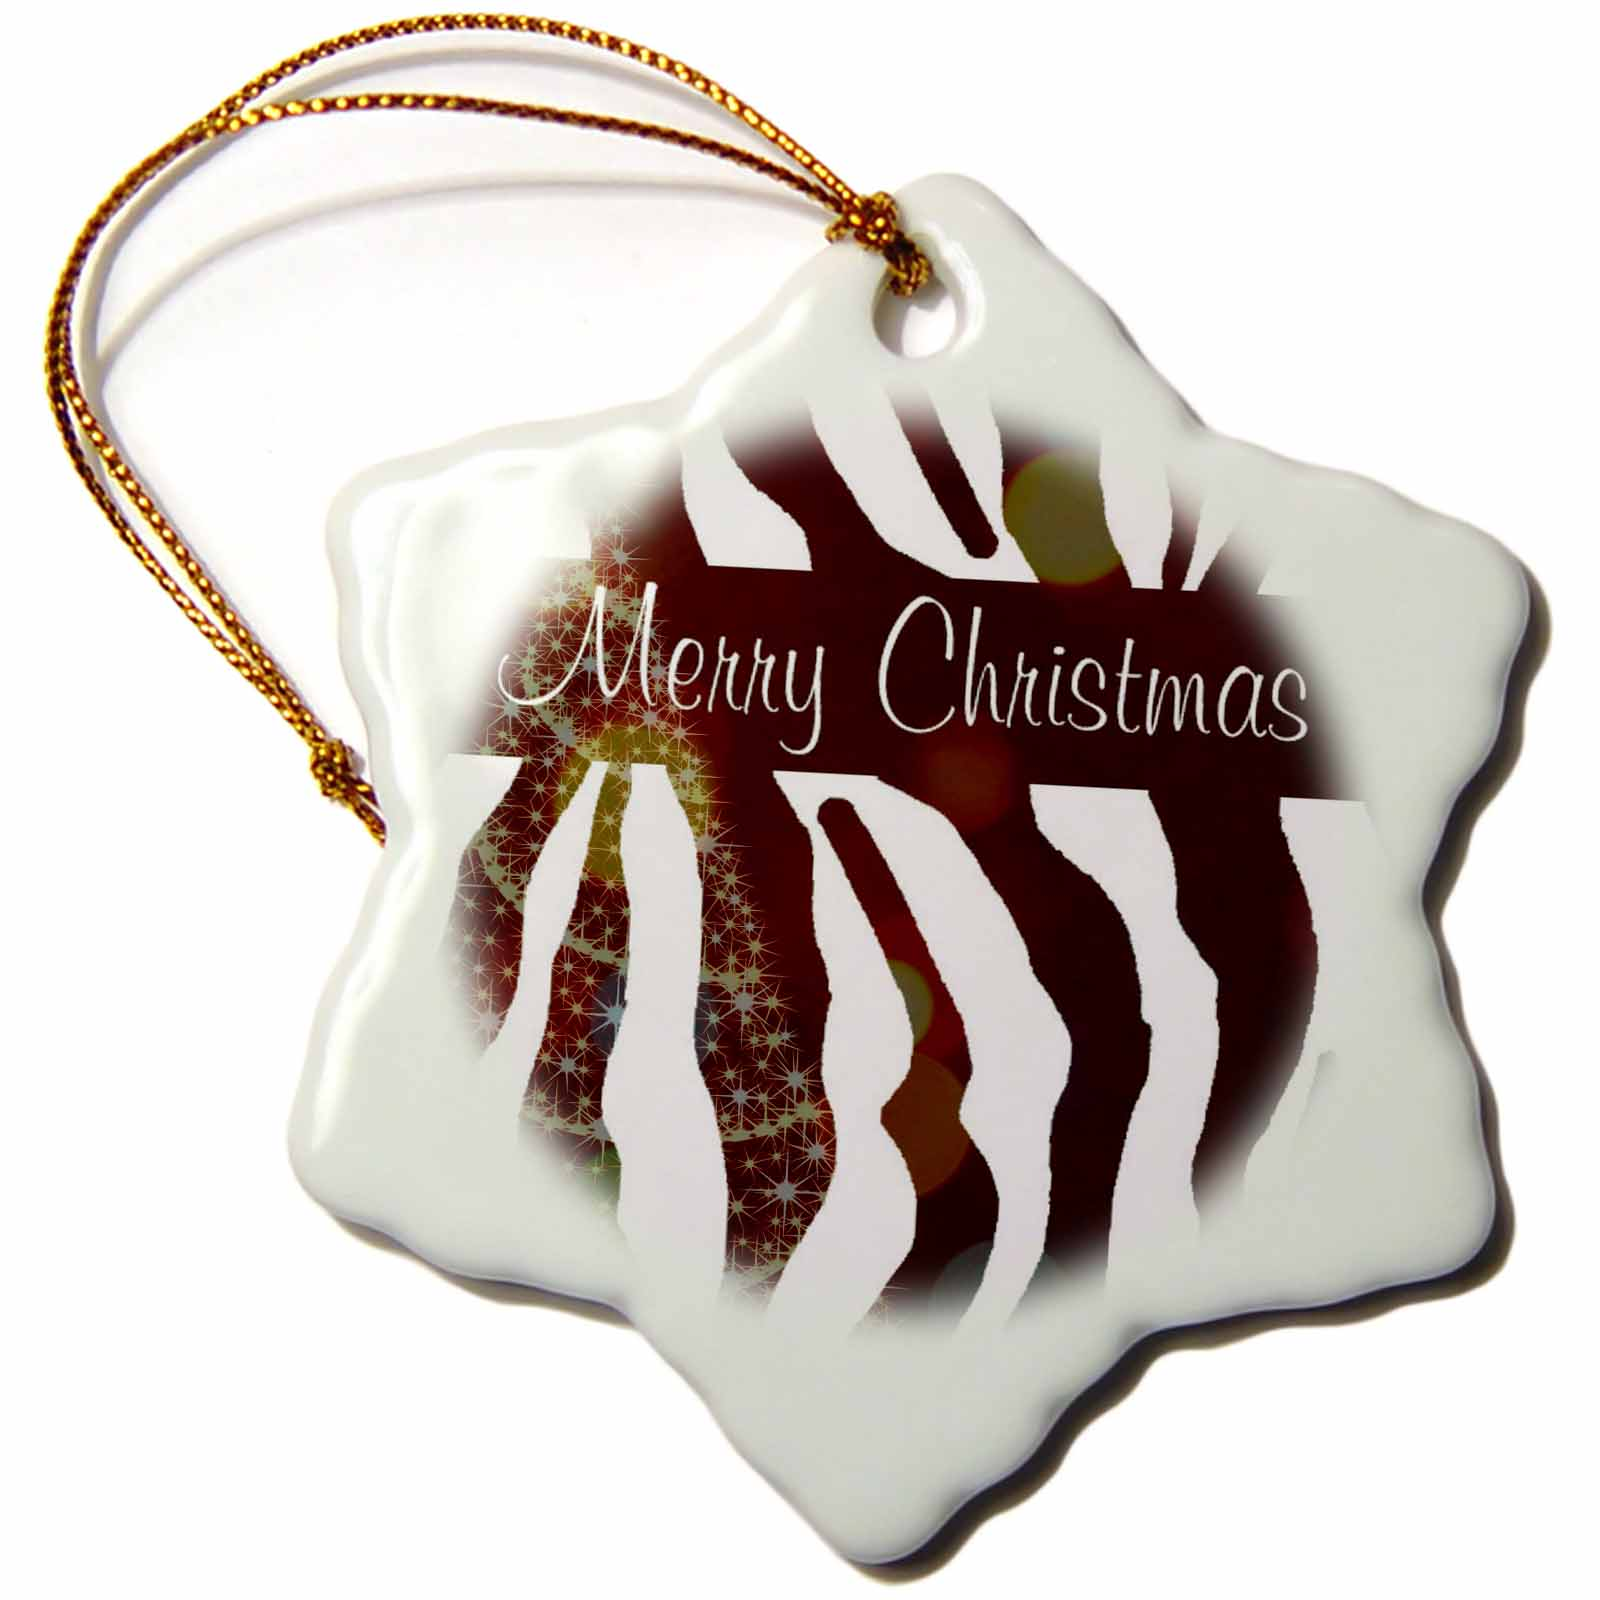 3dRose Zebra Print Merry Christmas with Tree, Snowflake Ornament, Porcelain, 3-inch